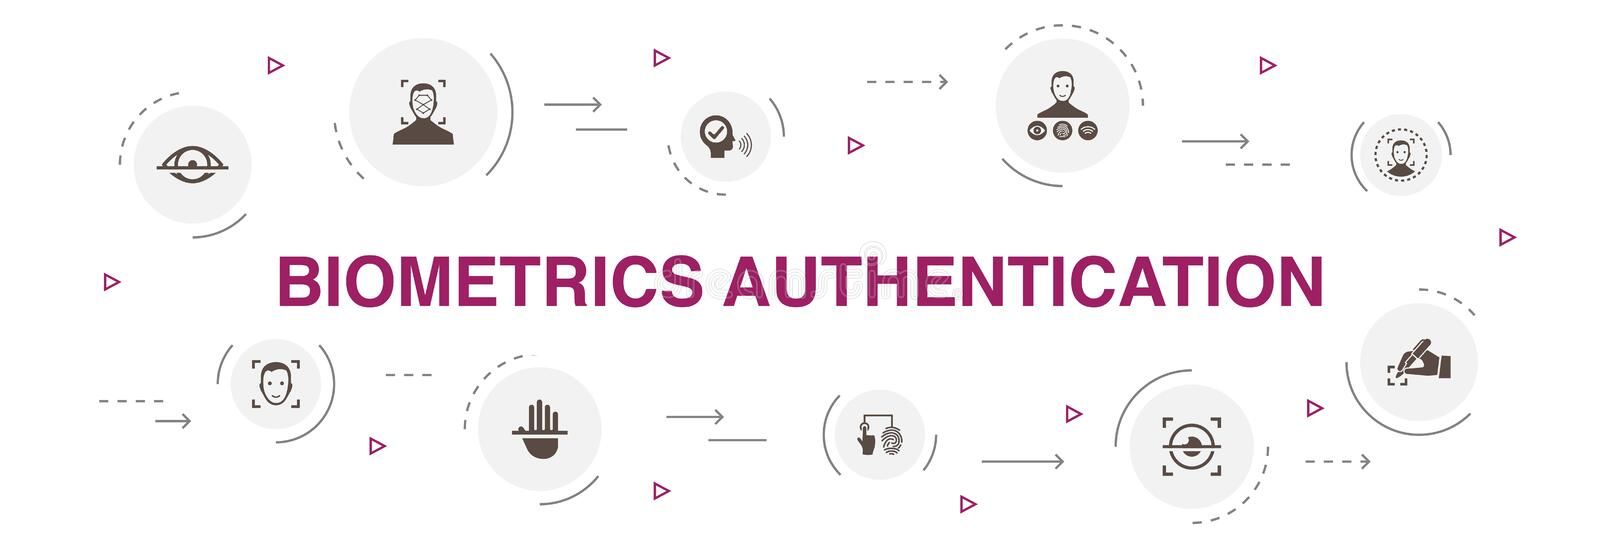 Biometrics authentication Infographic 10. Steps circle design. facial recognition, face detection royalty free illustration